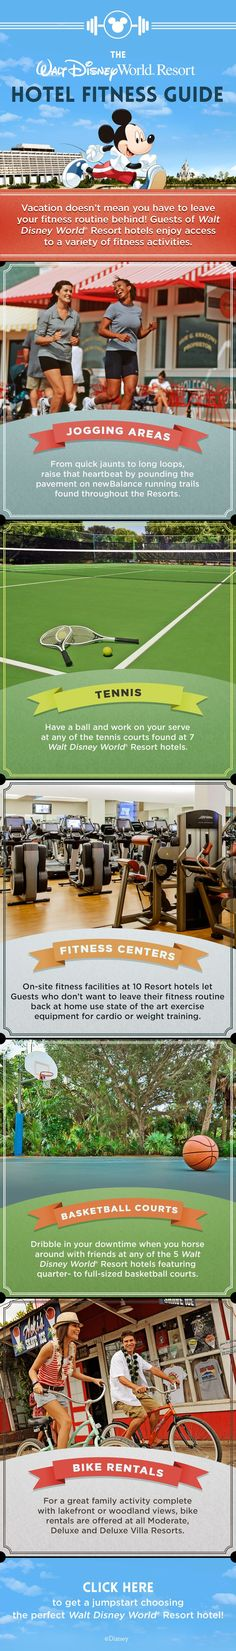 A Walt Disney World vacation doesn't mean you have to leave your fitness routine behind! Enjoy a variety of activities including running, tennis, biking, and basketball when you stay at a Walt Disney World Resort hotel! | Disney Tips | Disney Resort Tips | Disney Hotel Tips |